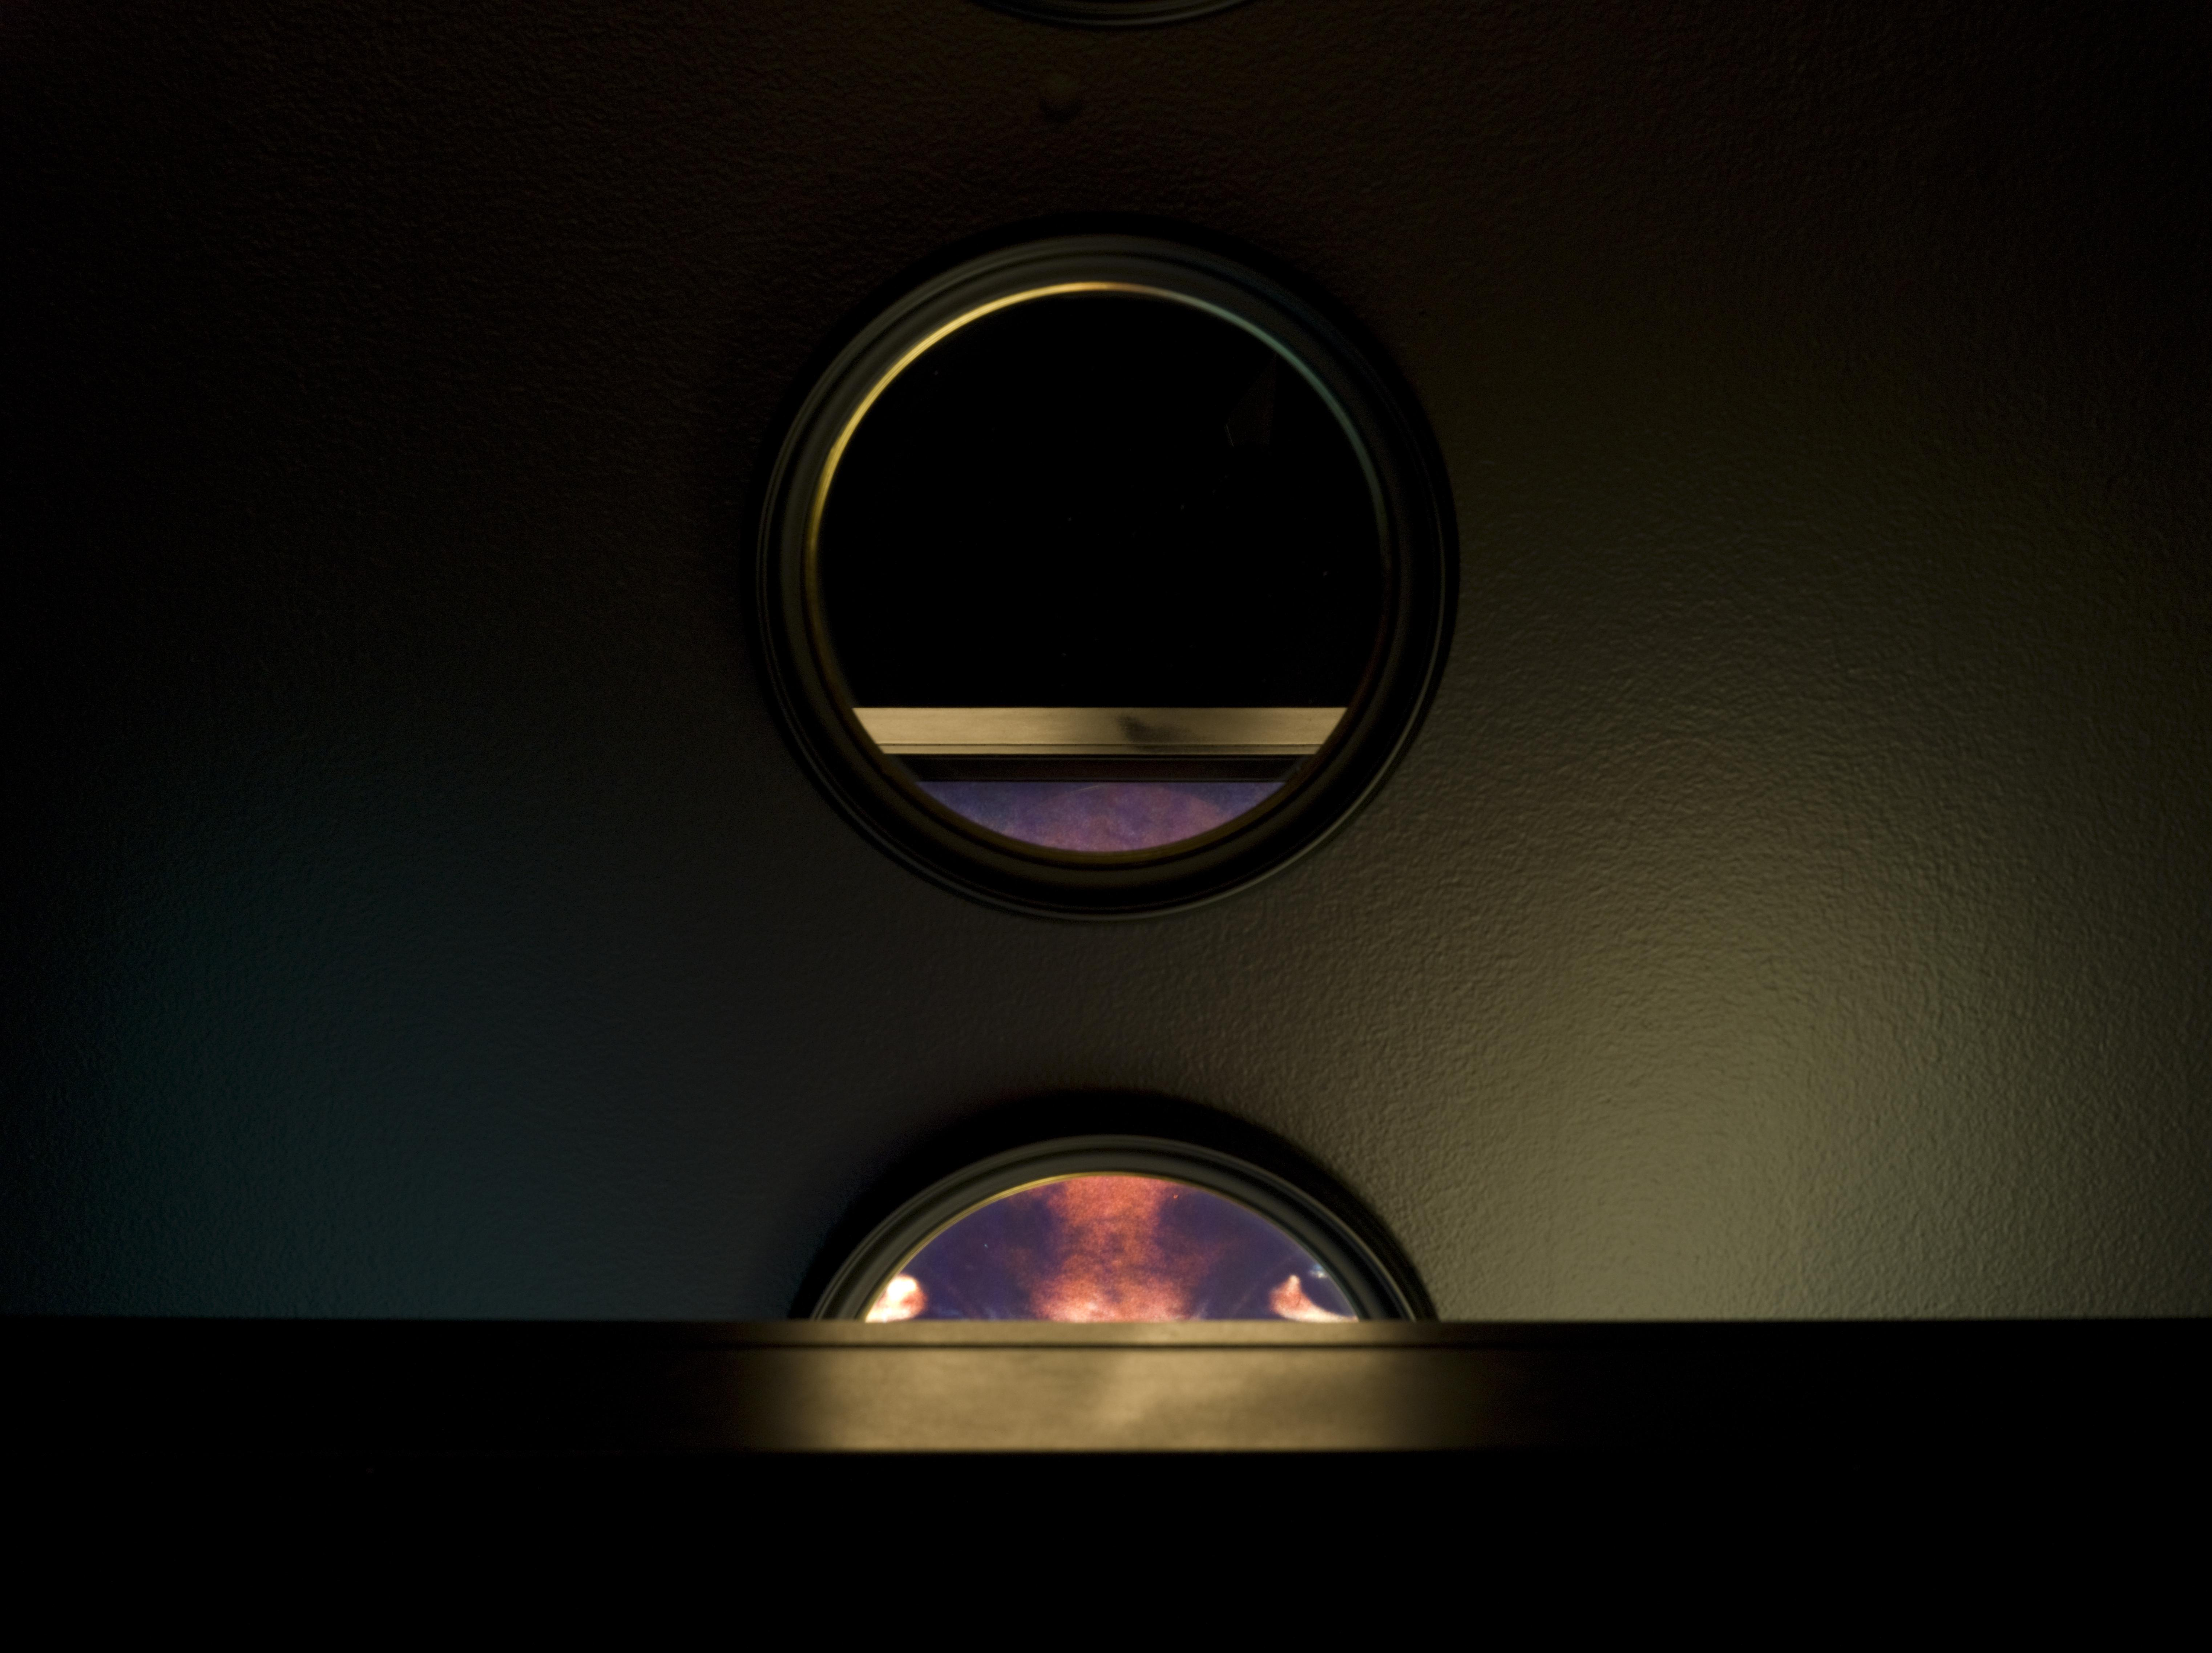 A dark view of a lightbox showing circular mirrors reflecting abstract colors of orange and purple